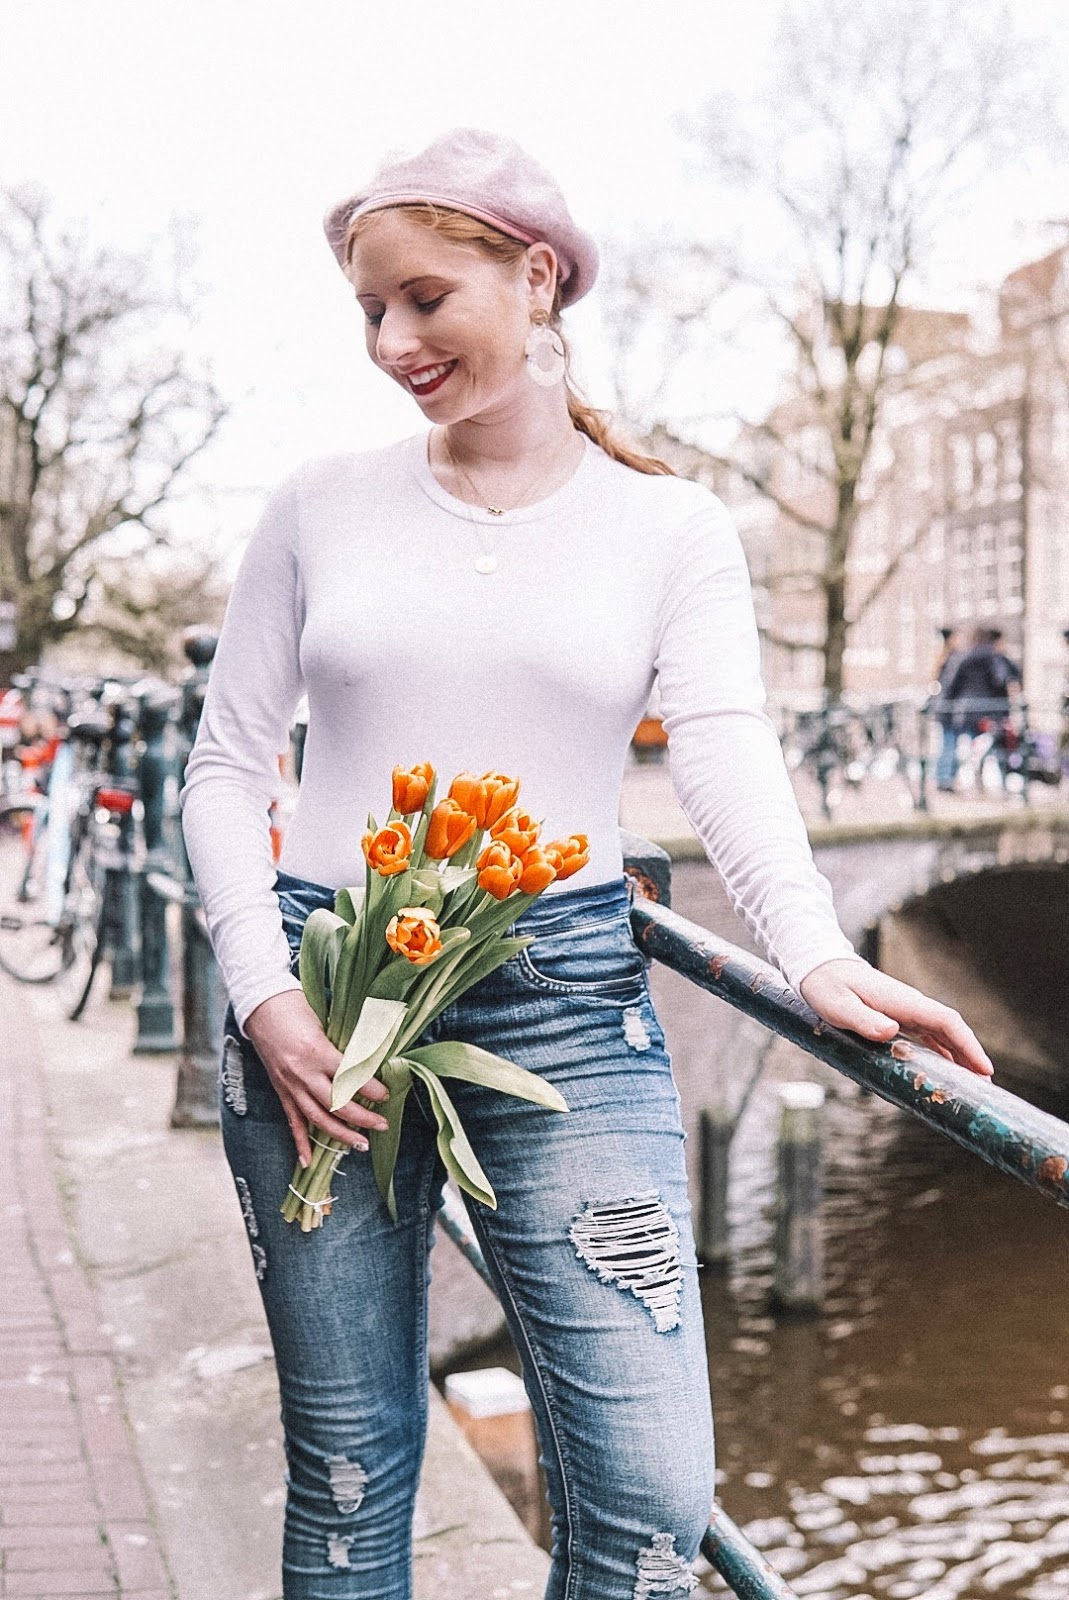 tampa blogger amanda burrows is wearing a cotton on white long sleeve top and distressed denim jeans. she is holding orange tulips in amsterdam.